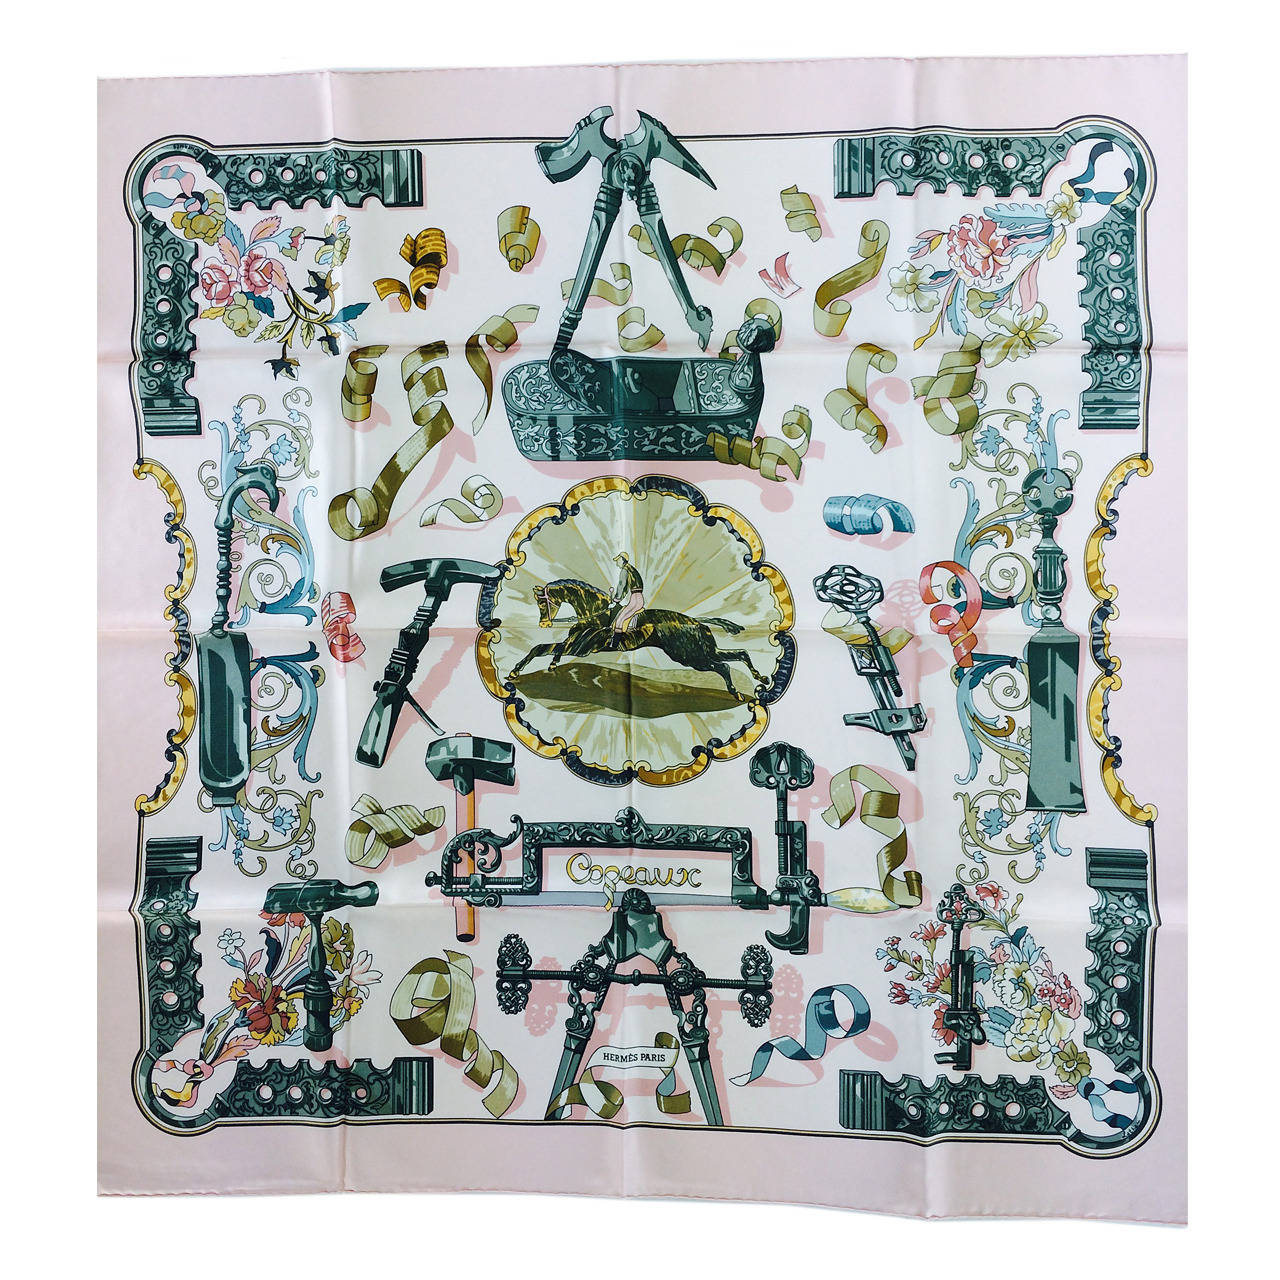 "1990s Hermes Copeaux silk twill scarf by Cathy Latham 36"" x 36"" For Sale"